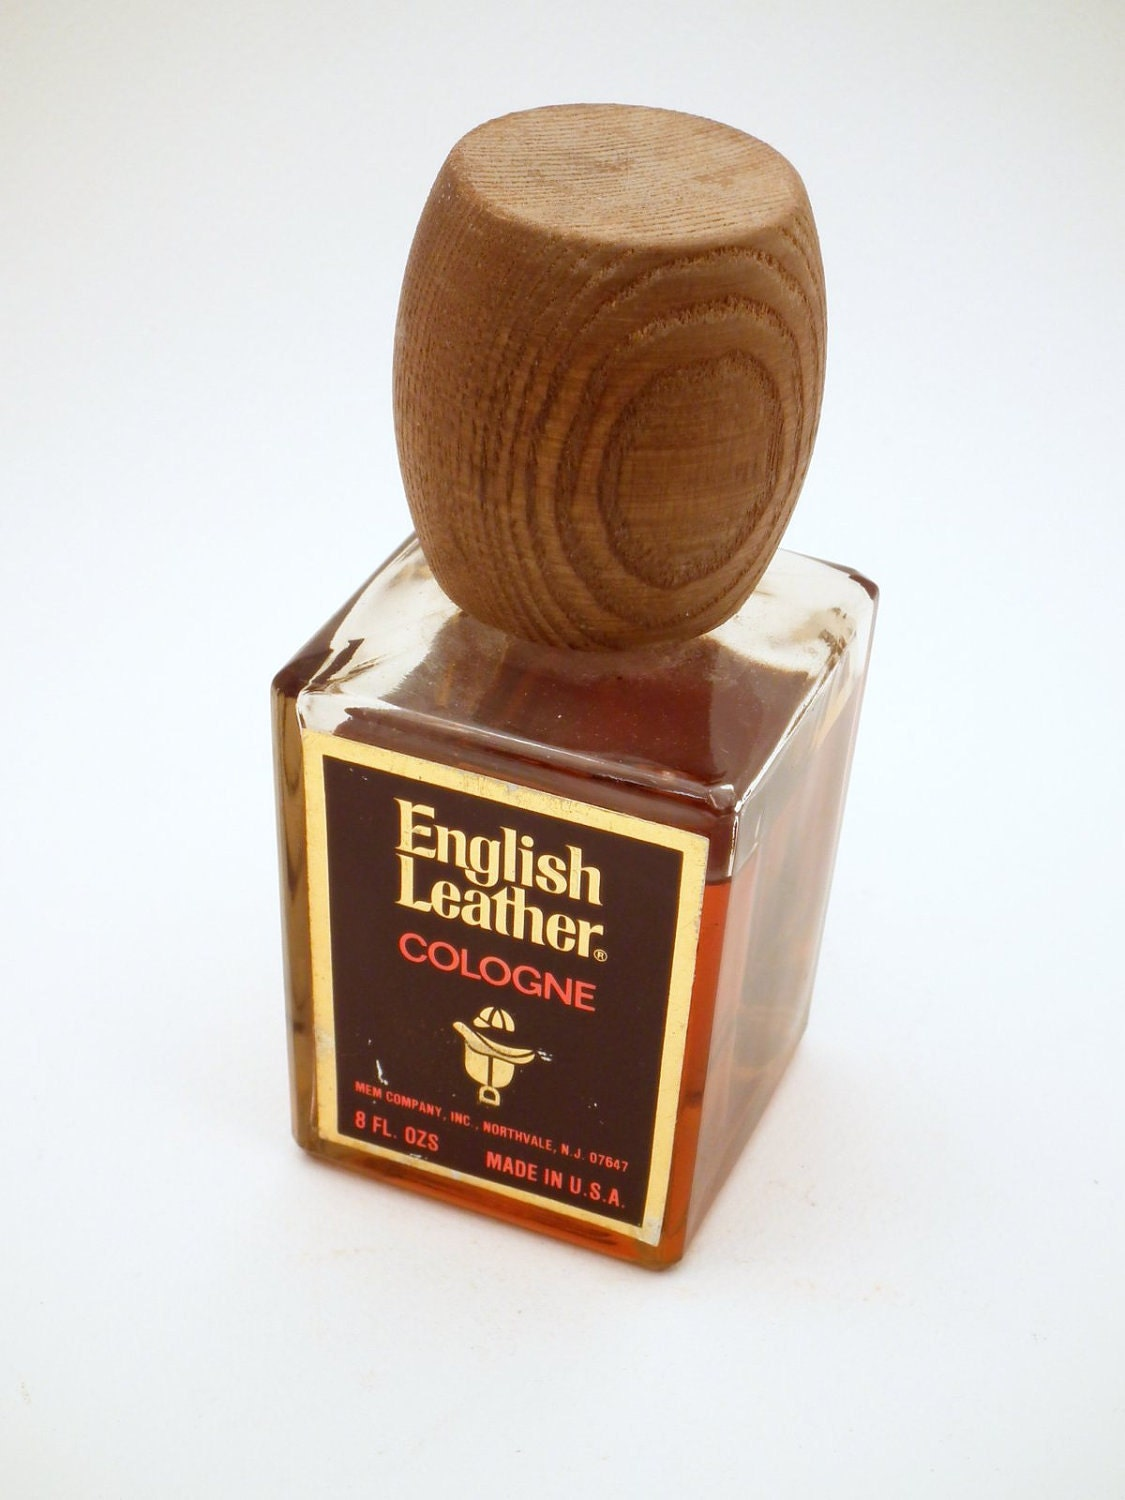 how to open english leather cologne